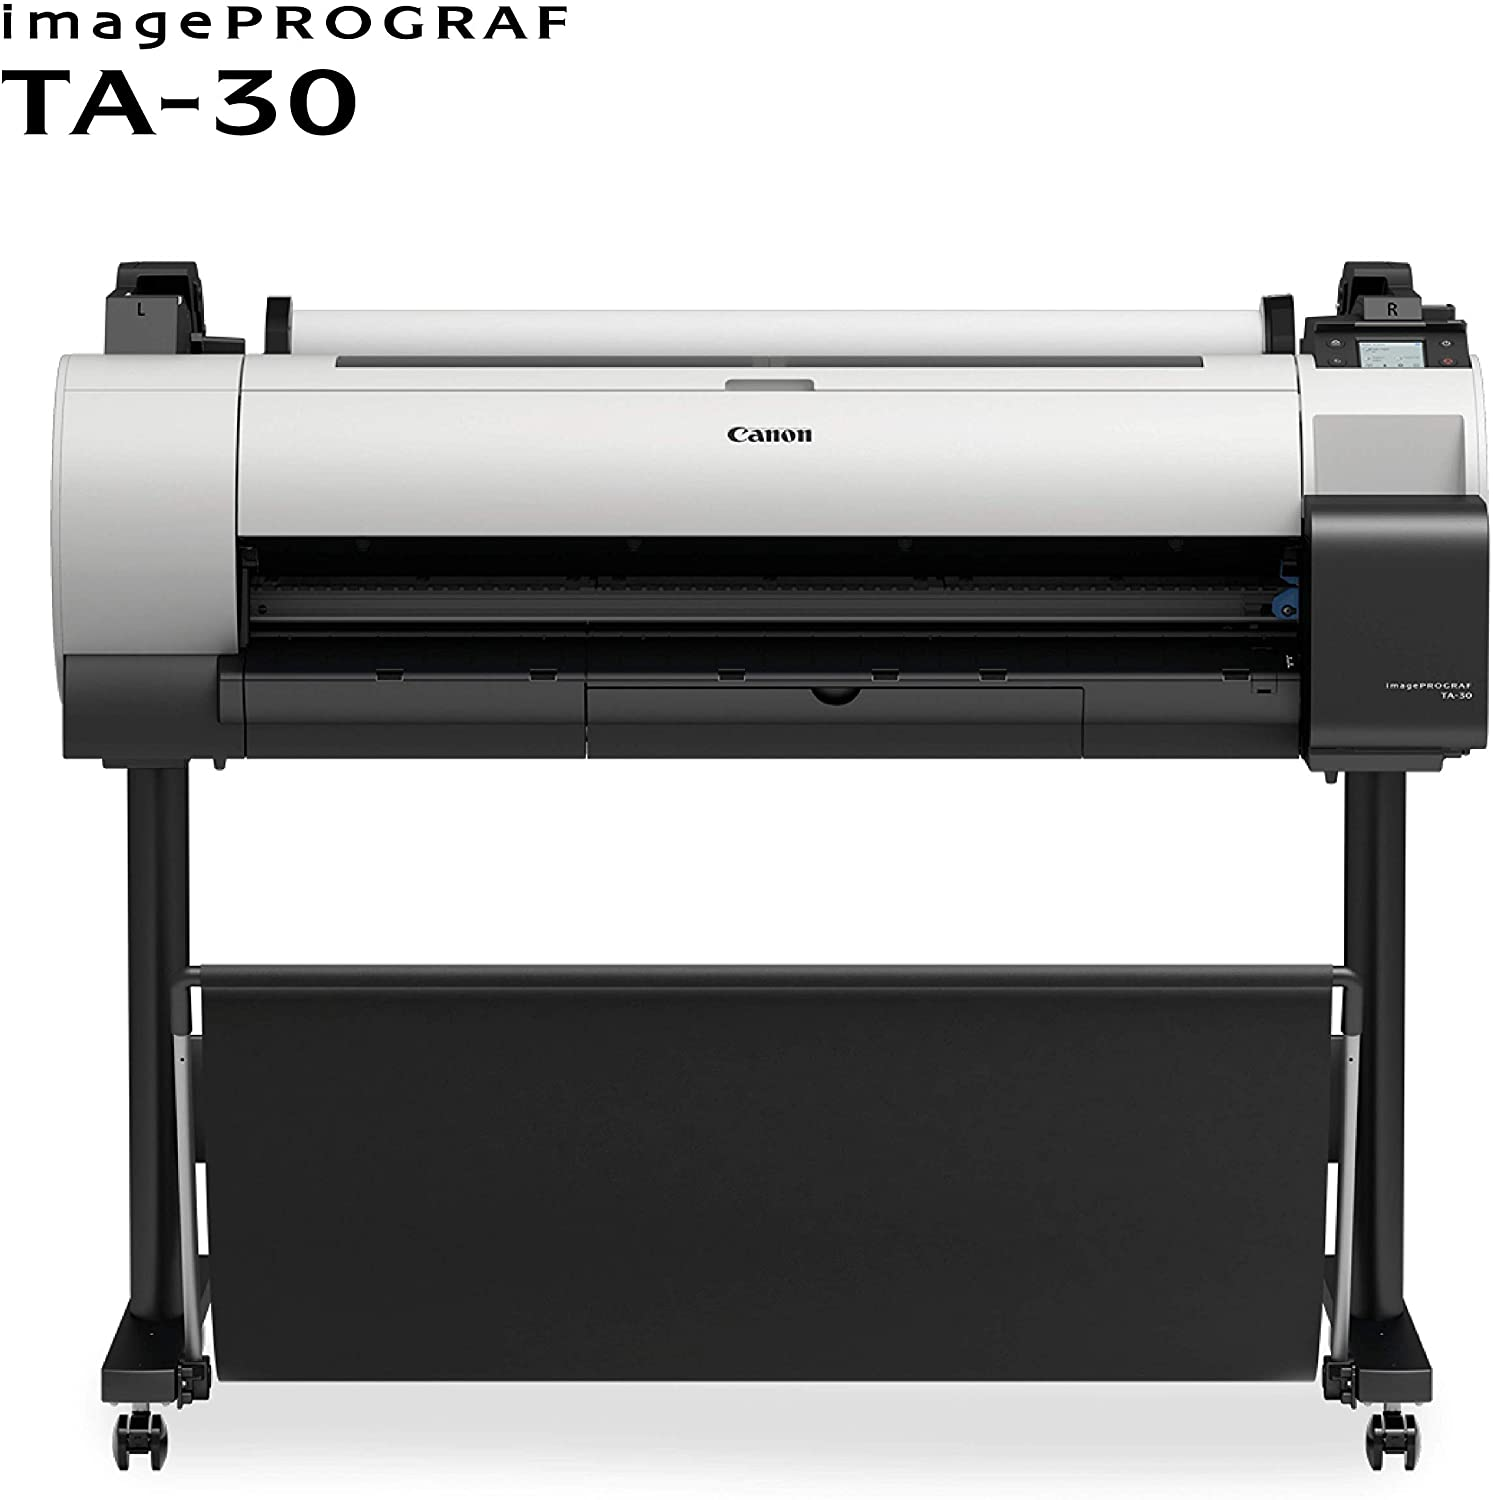 """Canon Image PROGRAF TA-30 with Stand 36"""" Large Format Inkjet Printer"""